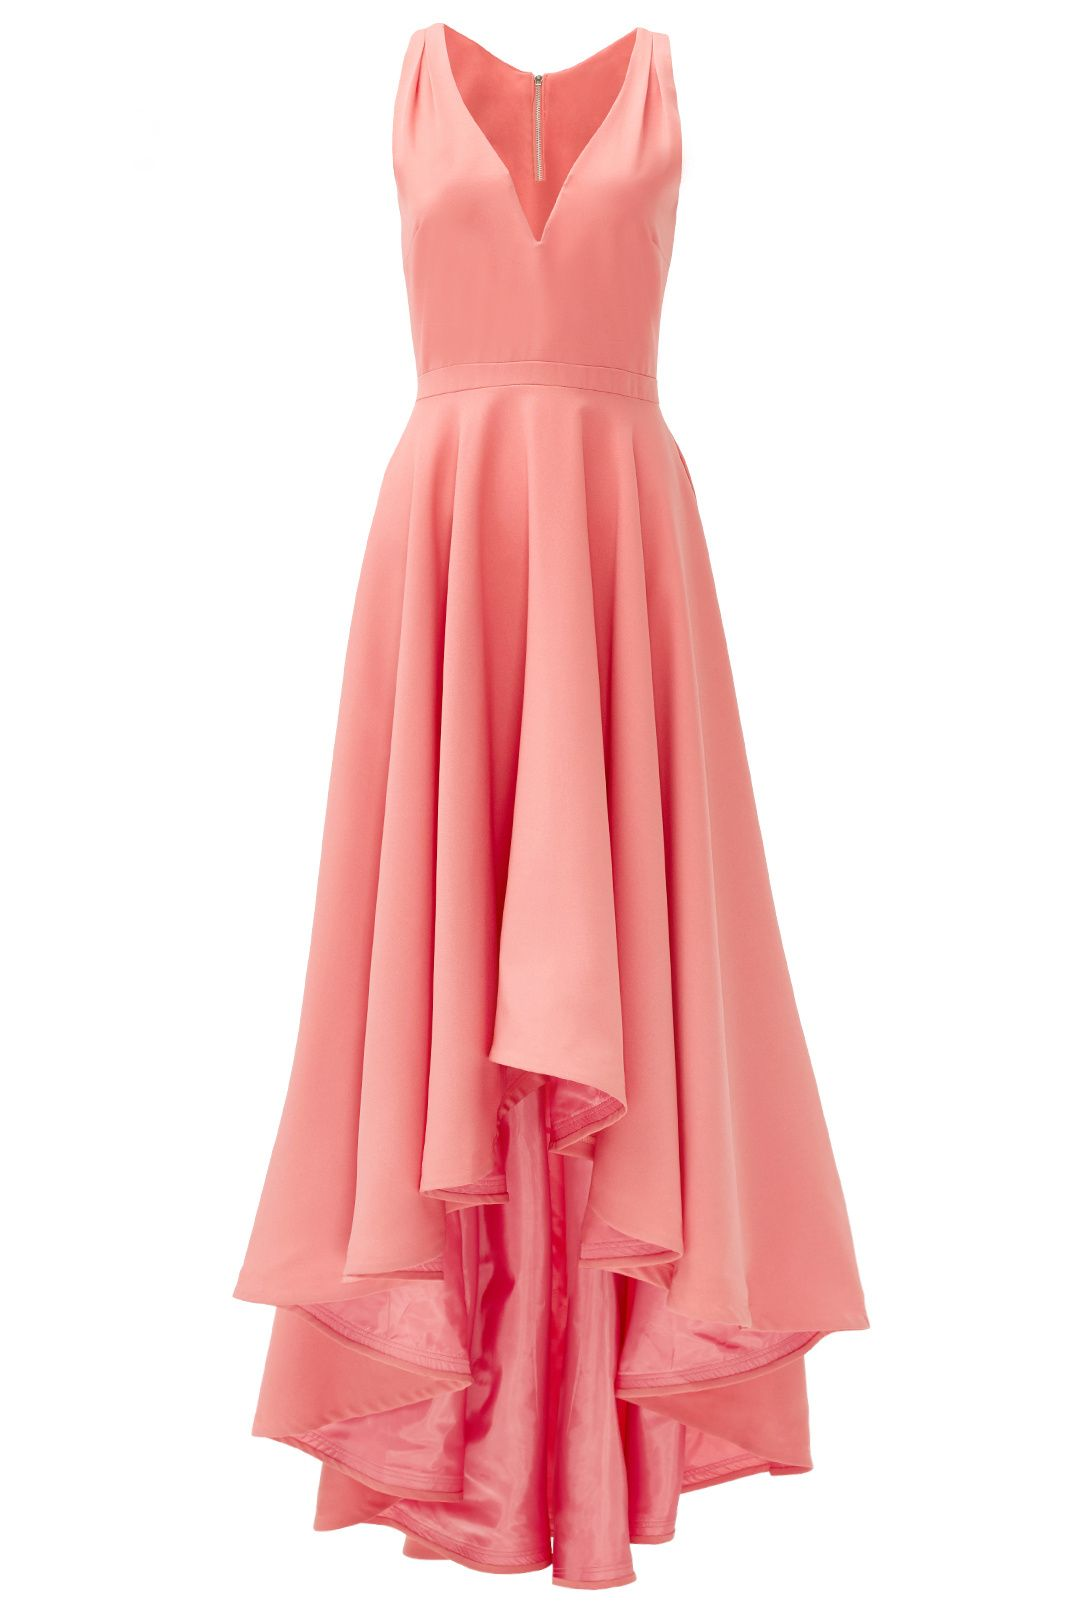 Coral Marilyn Gown | Some Day:) | Pinterest | Gowns, Coral dress and ...